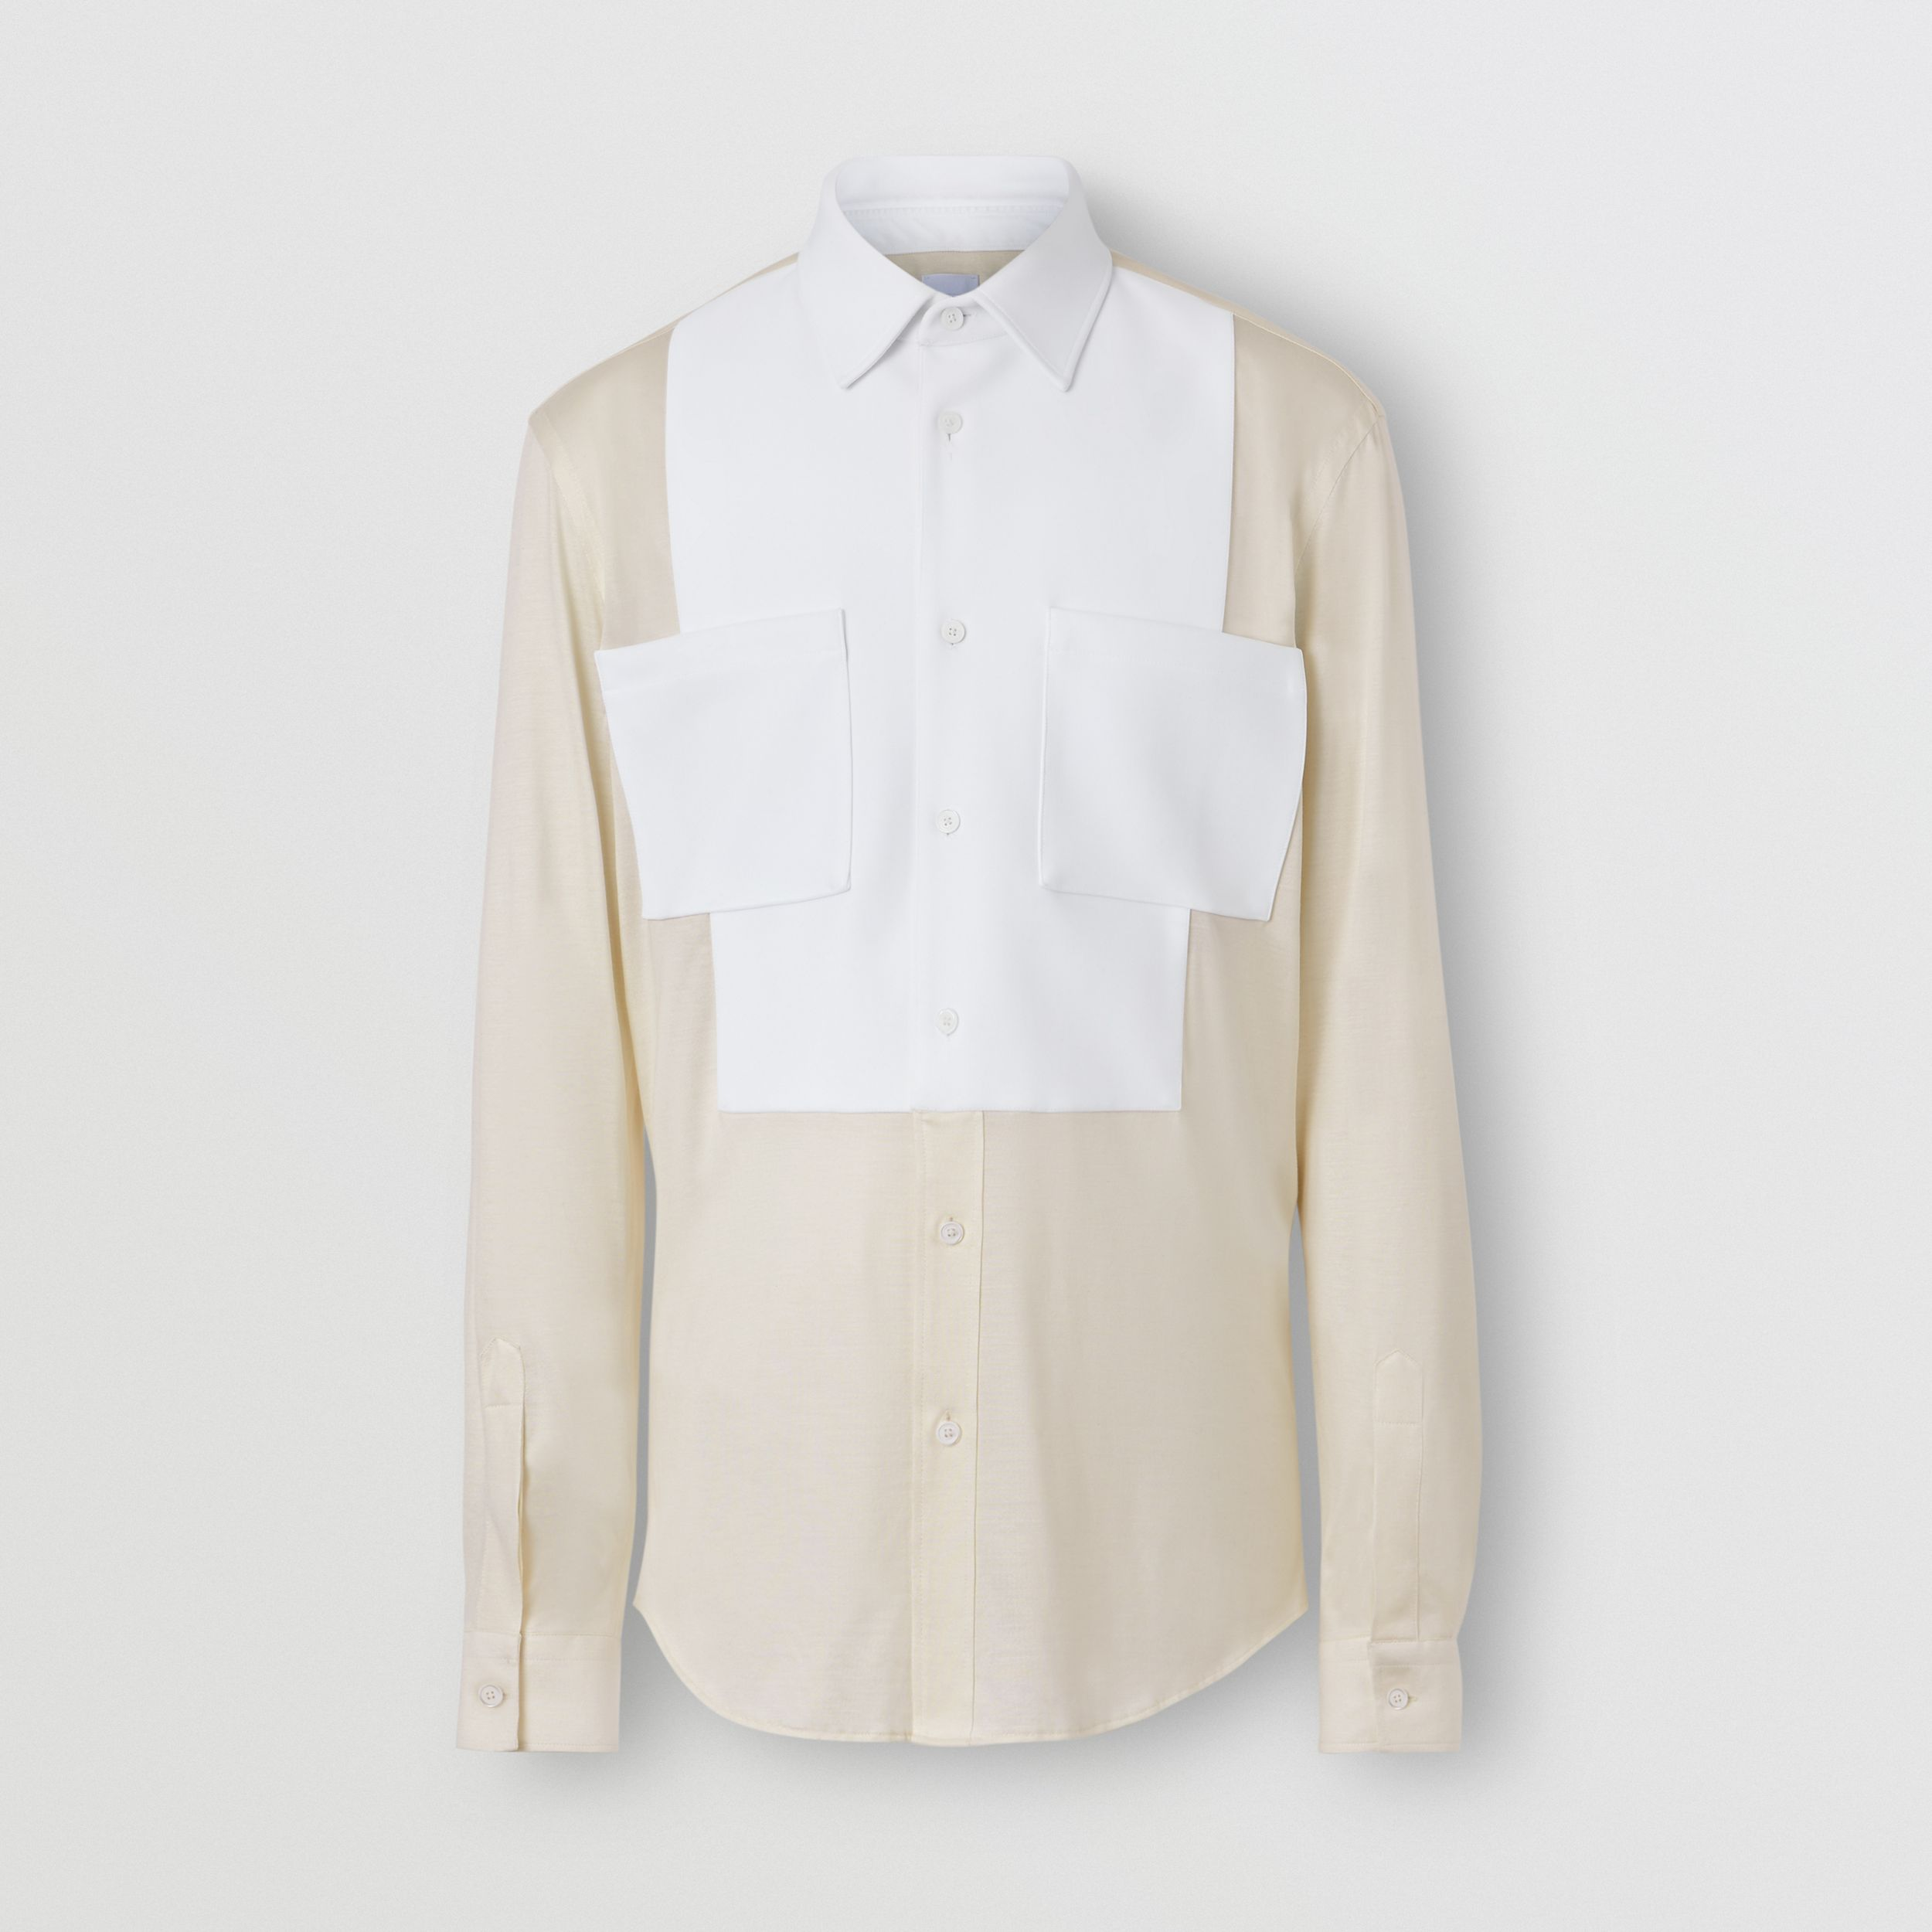 Classic Fit Neoprene Bib Silk Jersey Shirt in Natural White - Men | Burberry - 4